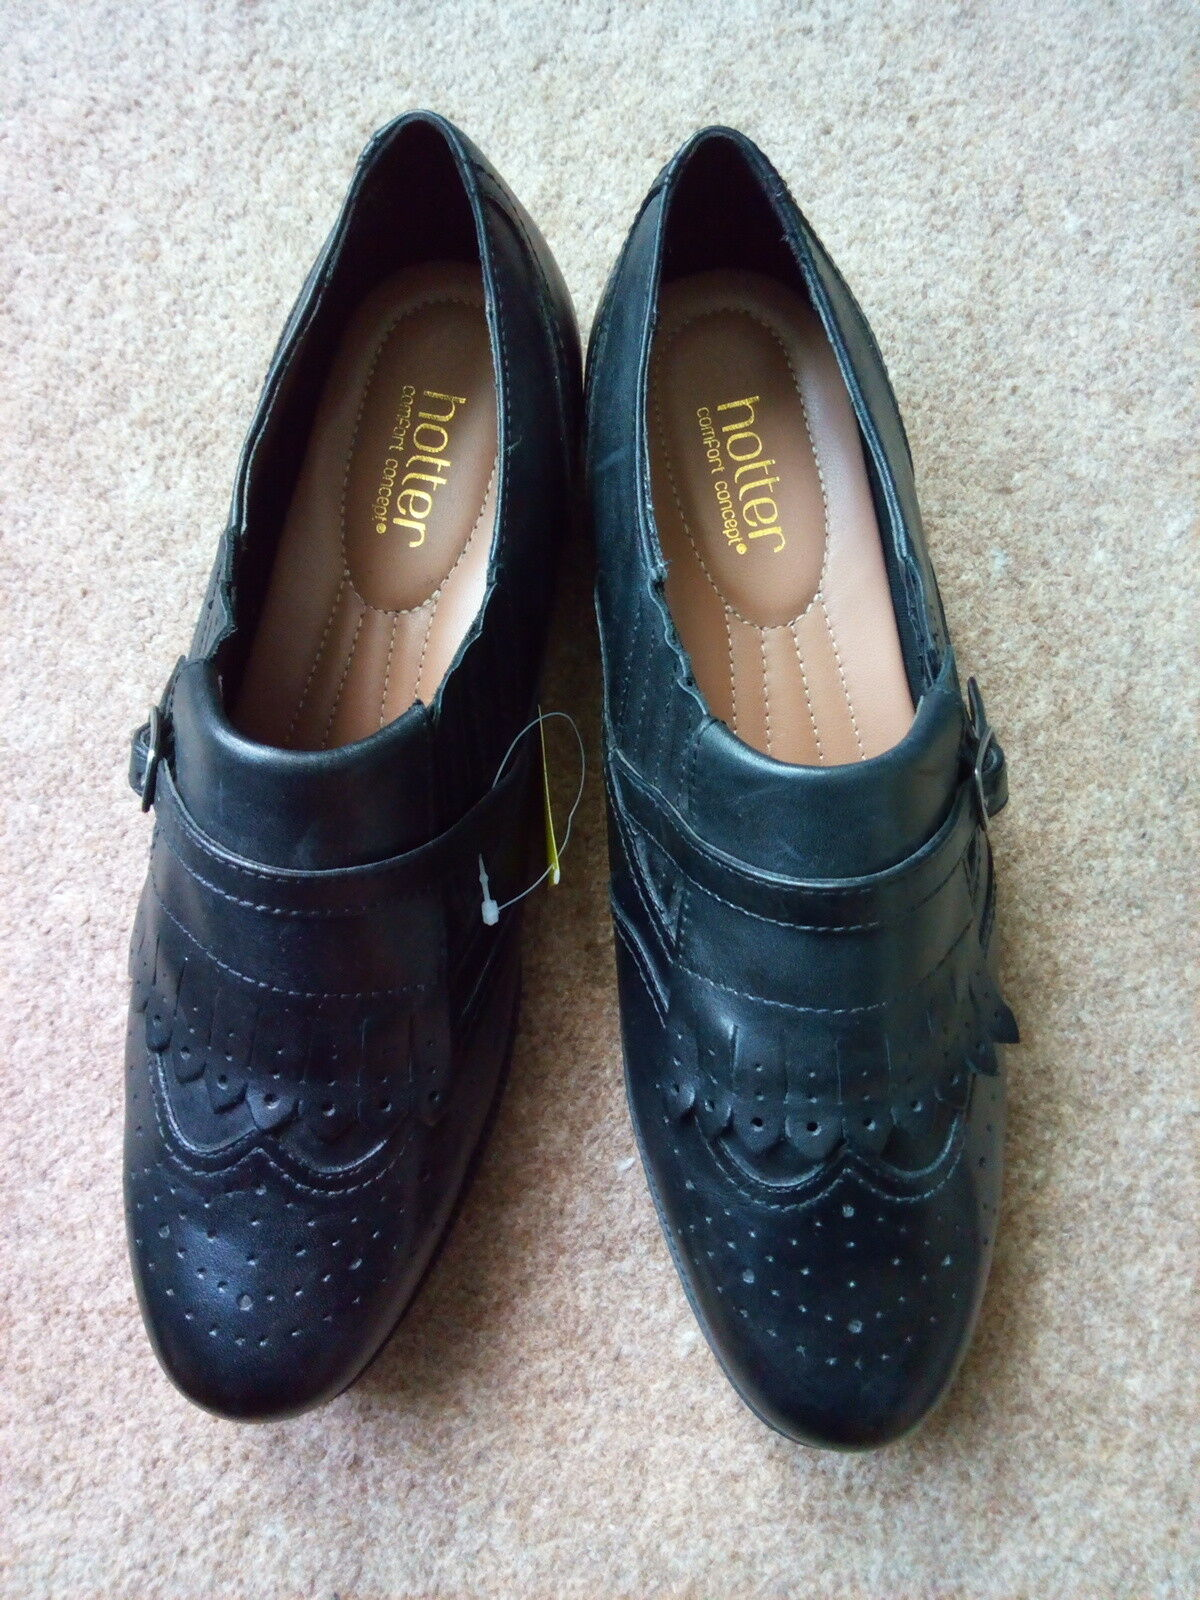 HOTTER SEATON LEATHER LEATHER SEATON WOMEN'S BROGUES SLIP ON SHOES UK/US/EU: 9/11/43 (NEW) 8afbe6